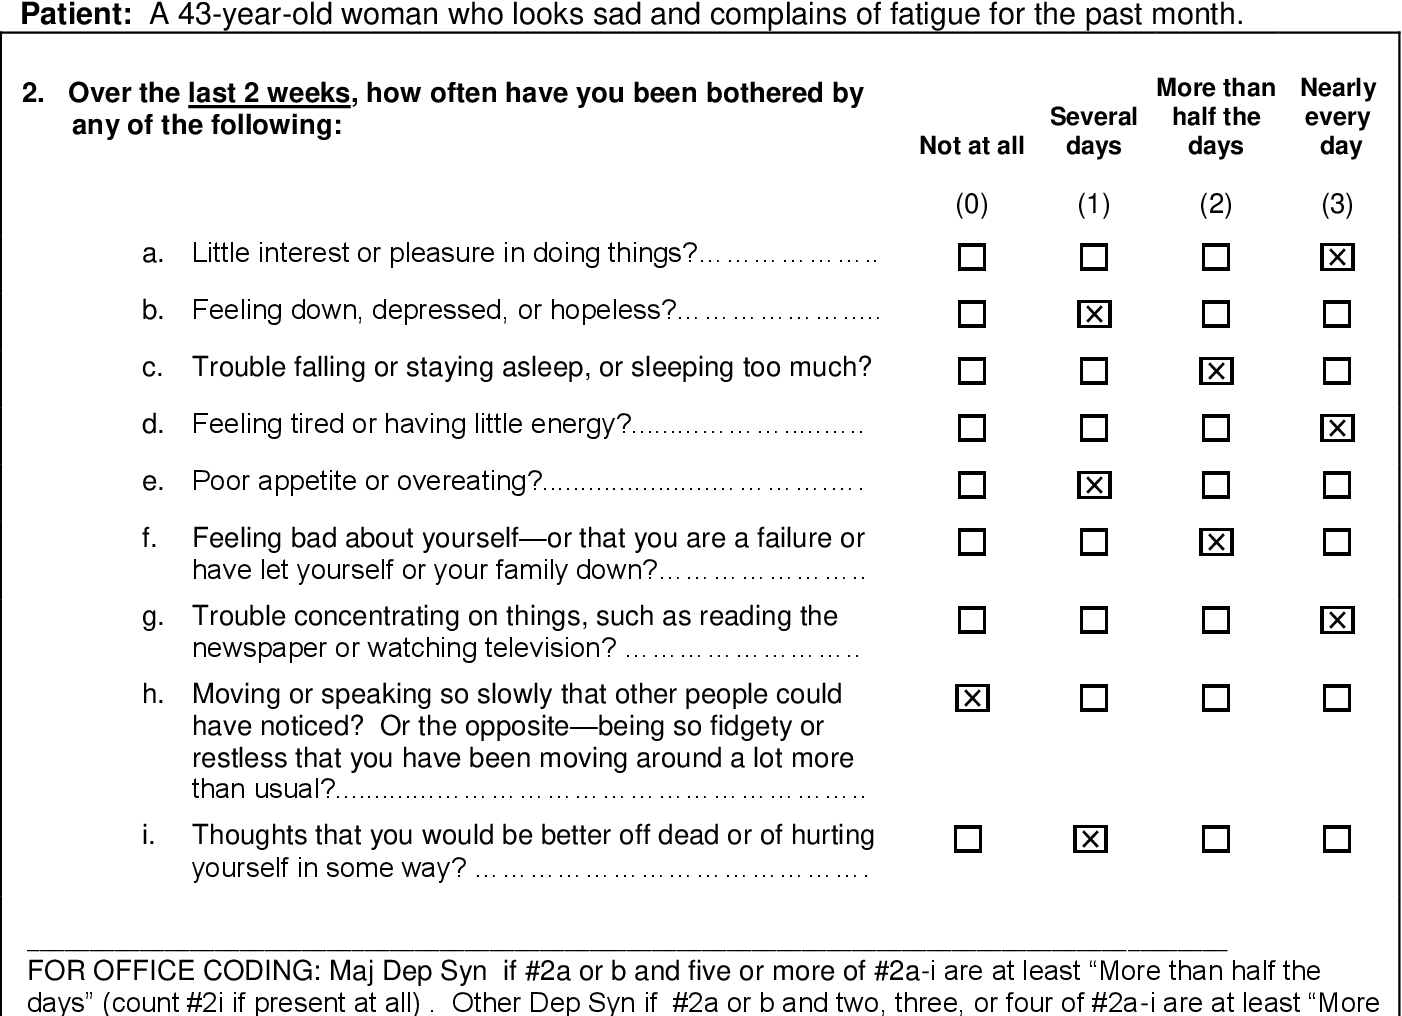 Pdf Instructions For Patient Health Questionnaire Phq And Gad 7 Measures Topic Pages Background 1 Coding And Scoring 2 4 5 Versions 3 Use As Severity And Outcome Measures 6 7 Semantic Scholar